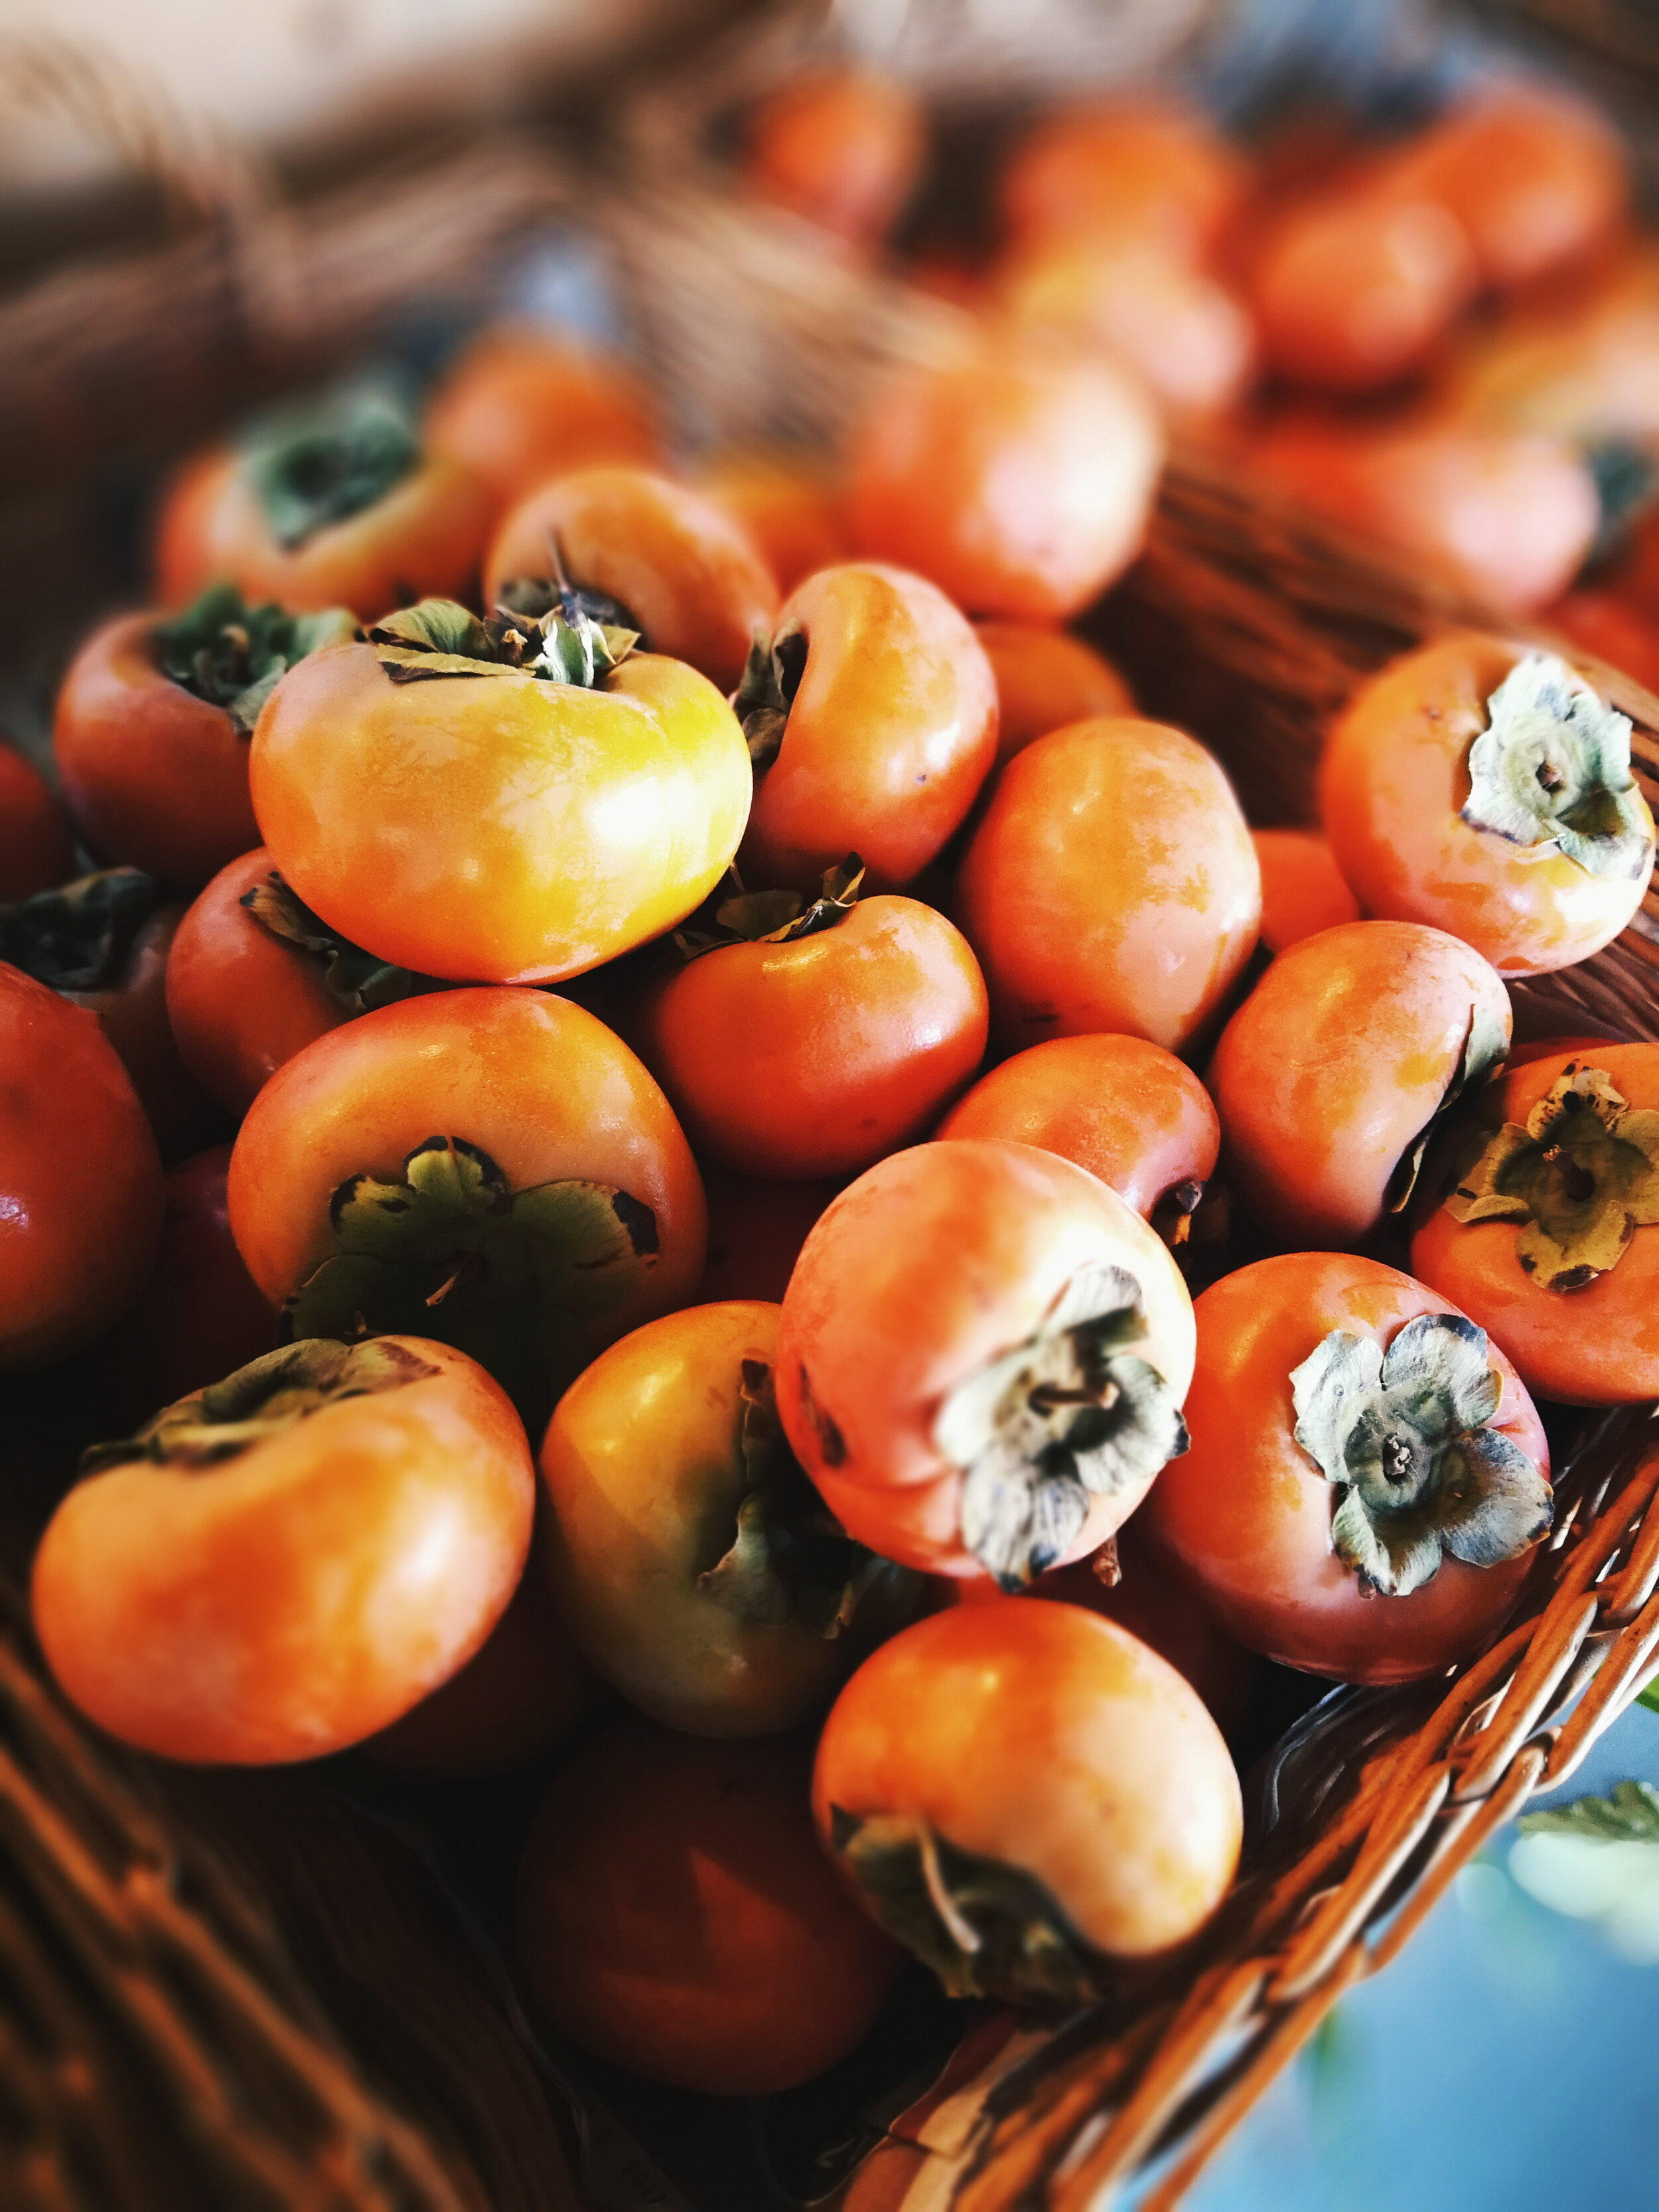 Fuyu Persimmons - Fuyu Persimmons are small and squat and are non-astringent which means they can be eaten hard like an apple. There are many varieties of persimmons but many are sold as Fuyus. The larger counterpart of this variety is the Giant Fuyu.